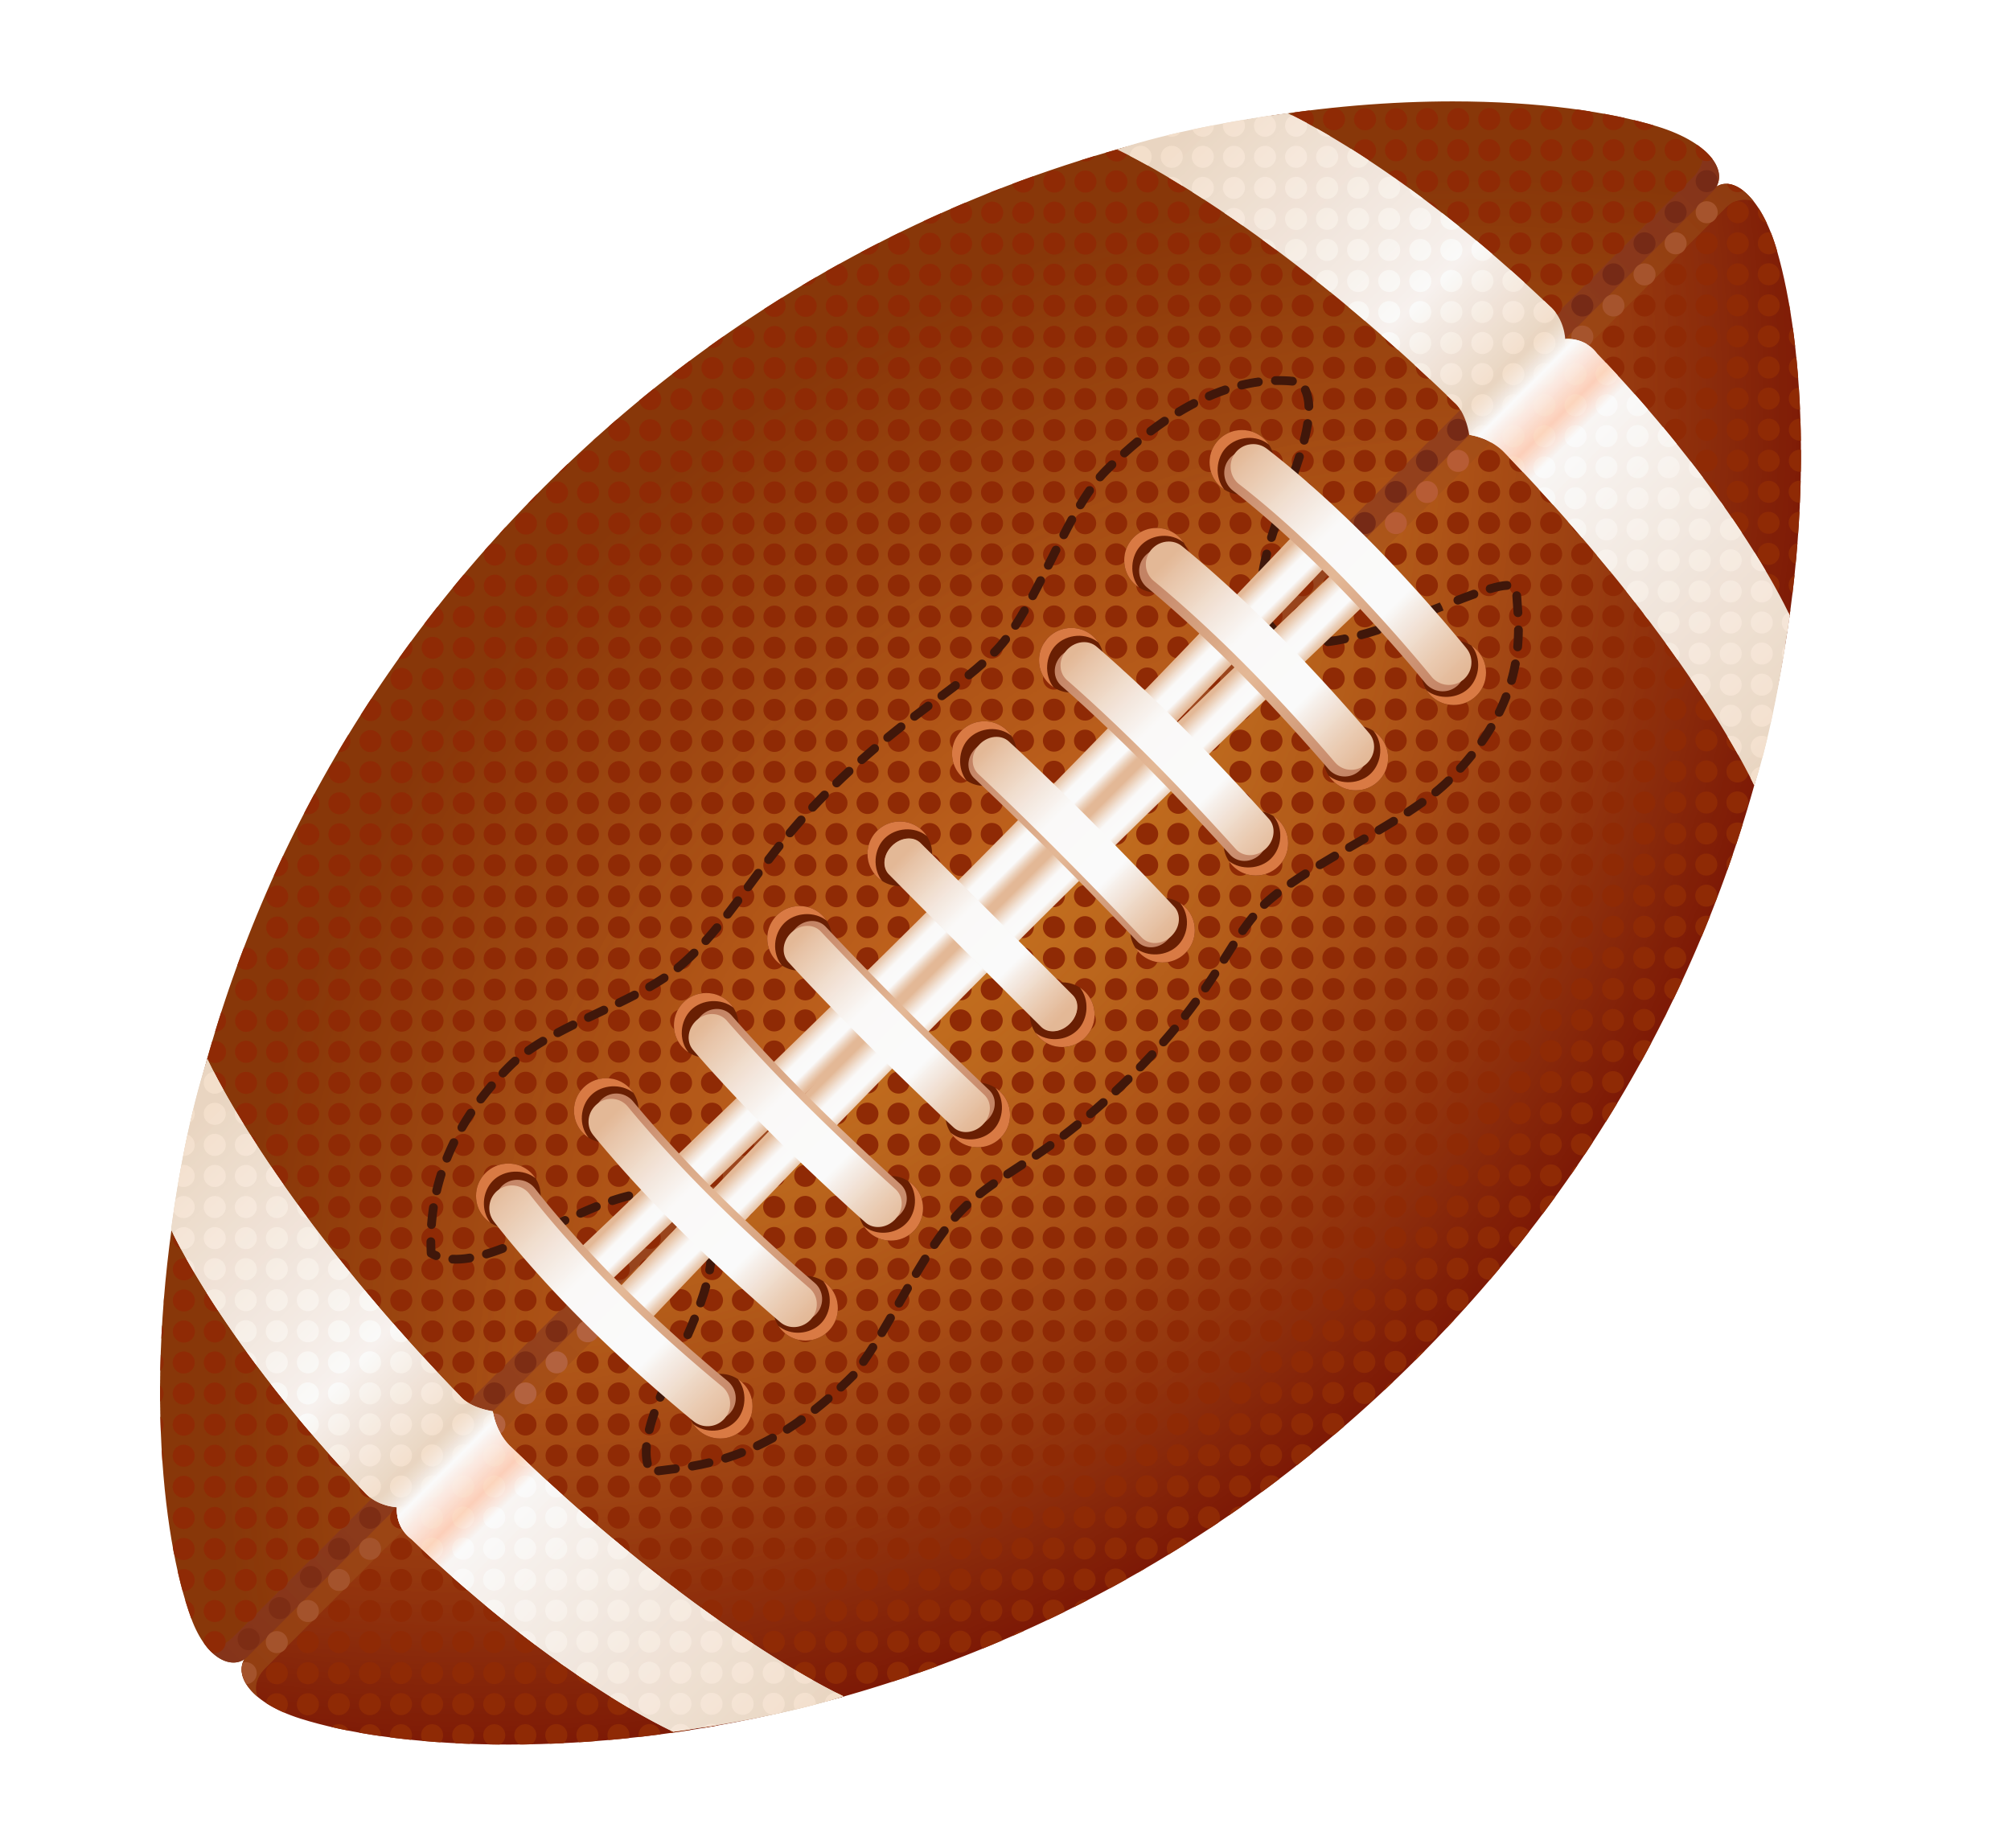 American football clipart images clipart images gallery for.